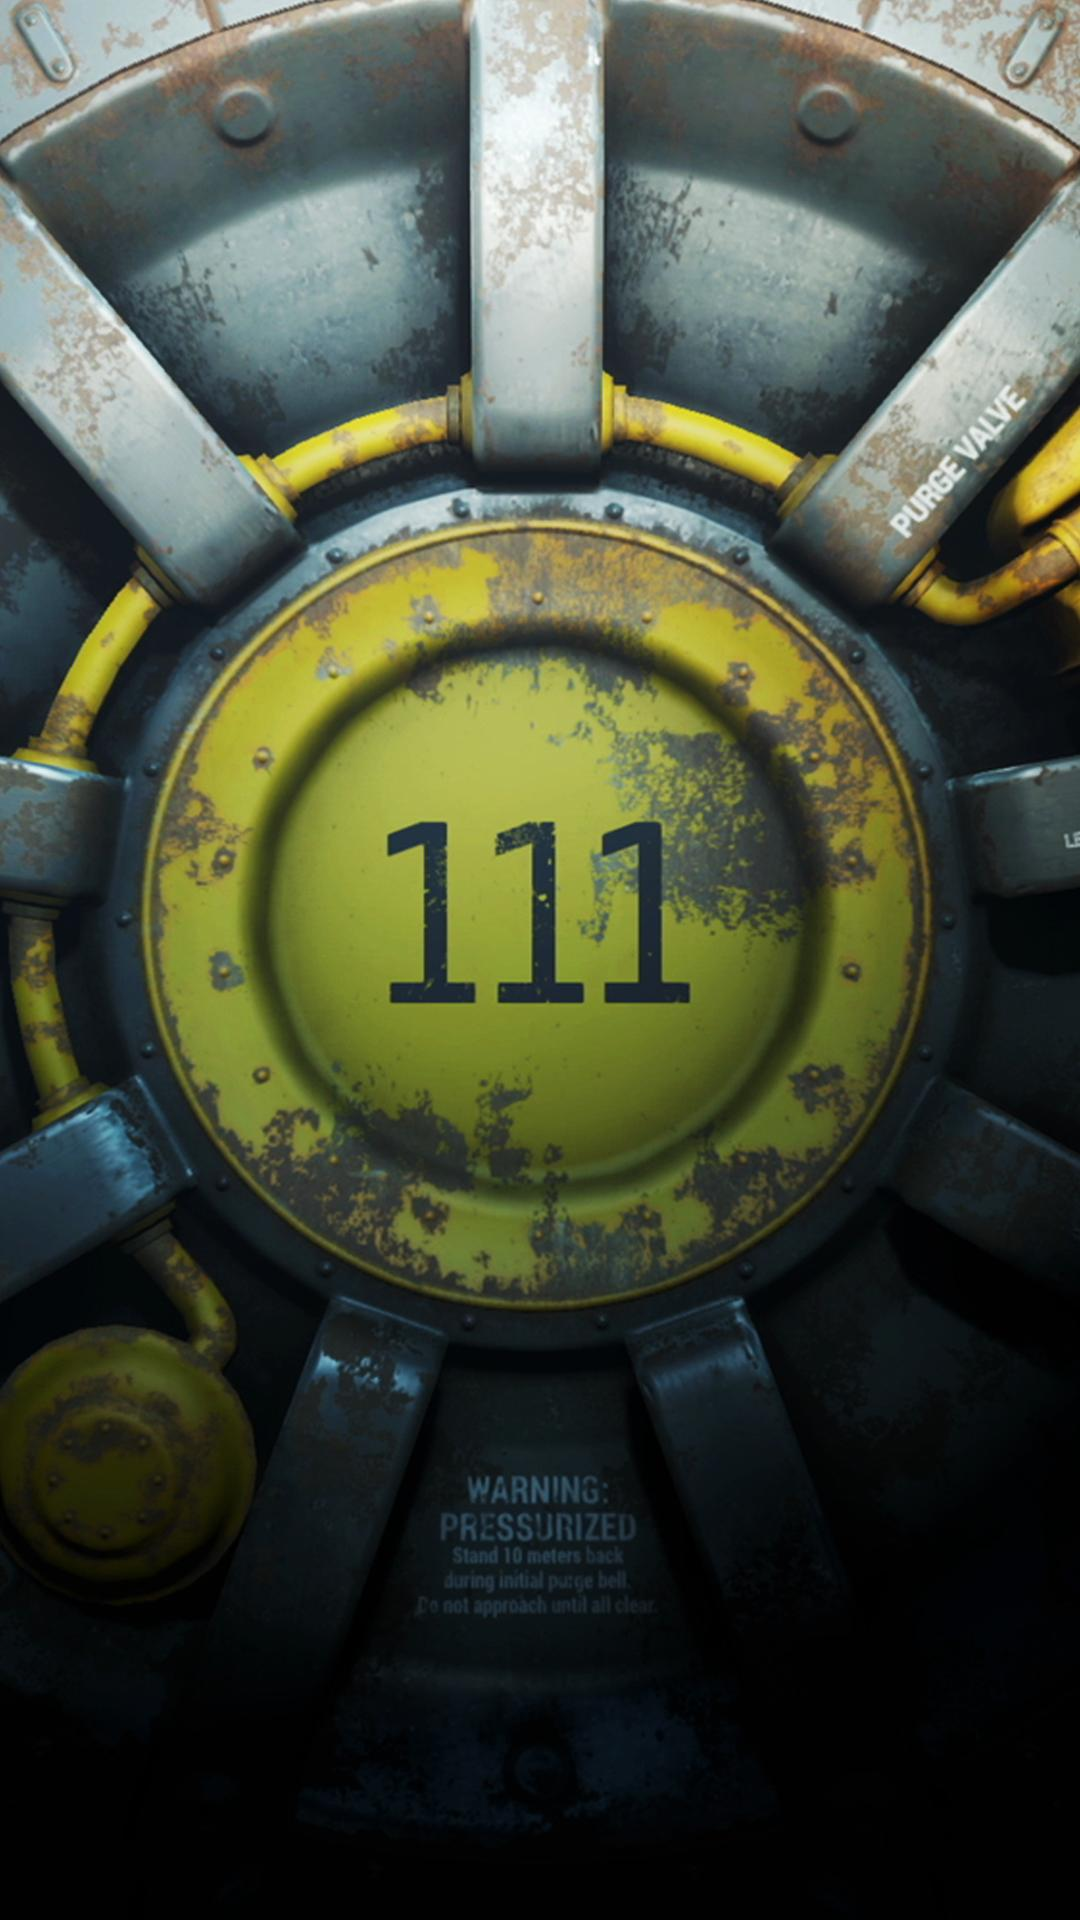 47 Fallout 3 Phone Wallpaper On Wallpapersafari